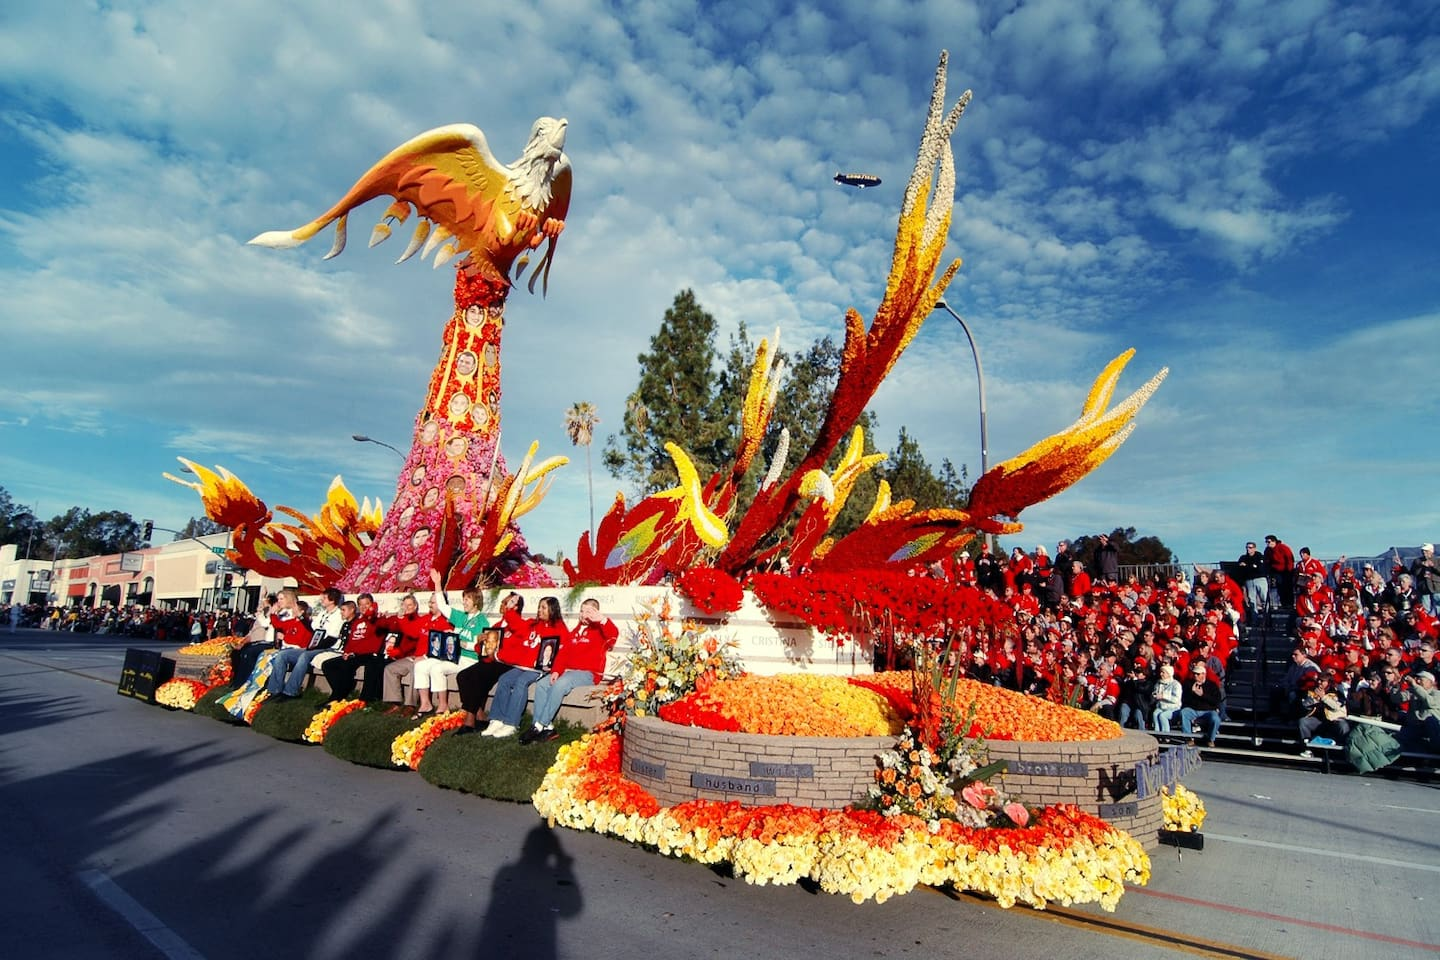 See the Rose Parade in walking distance from our house.